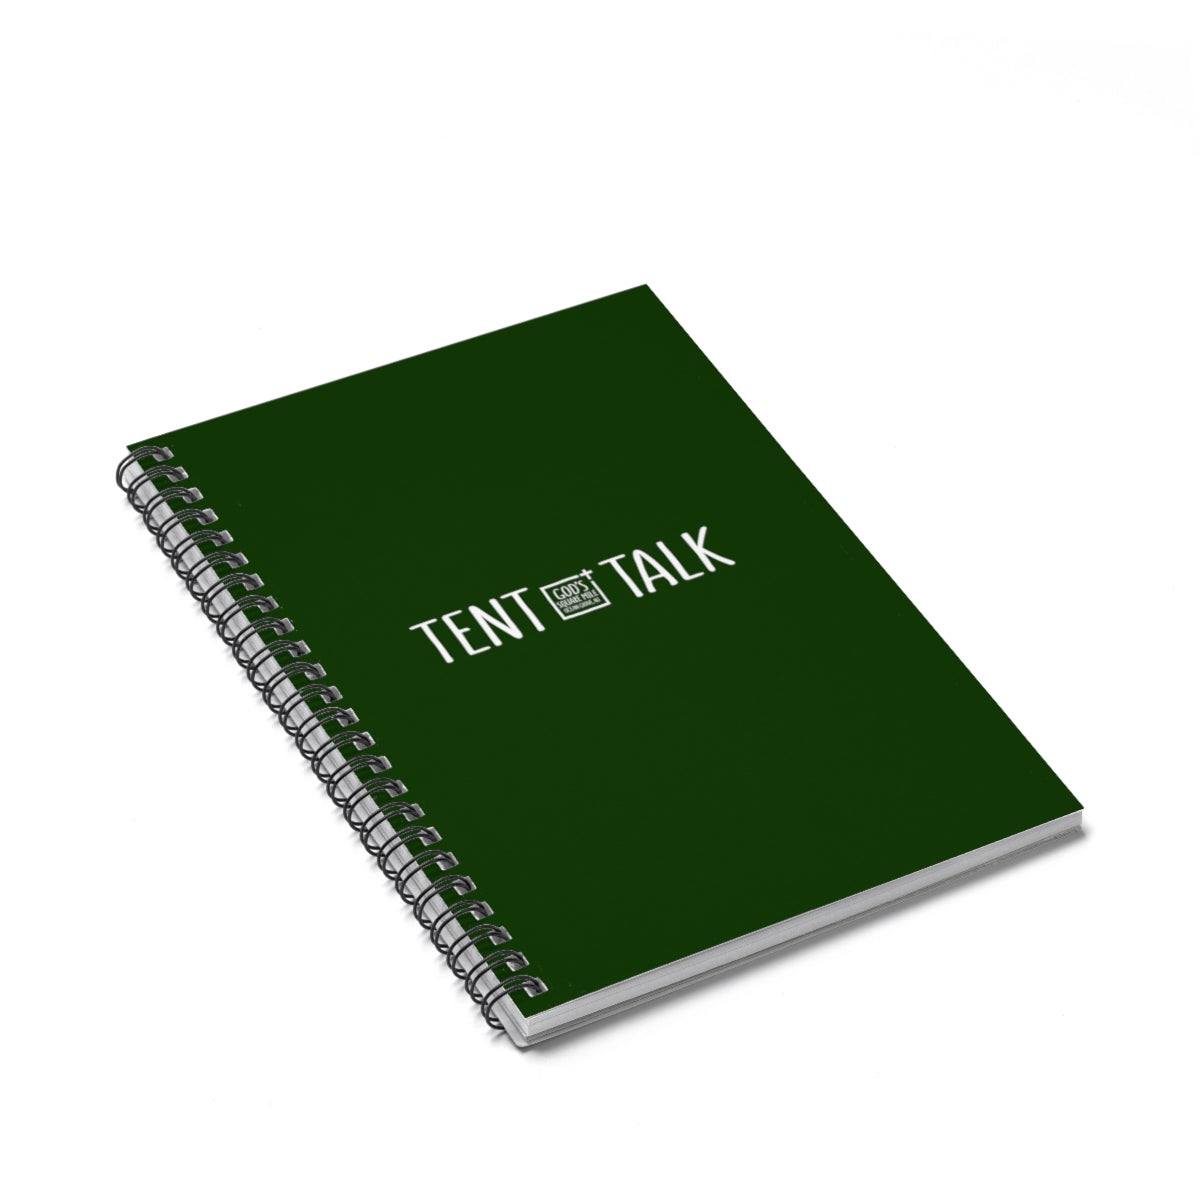 Tent Talk Spiral Notebook - Dark Green